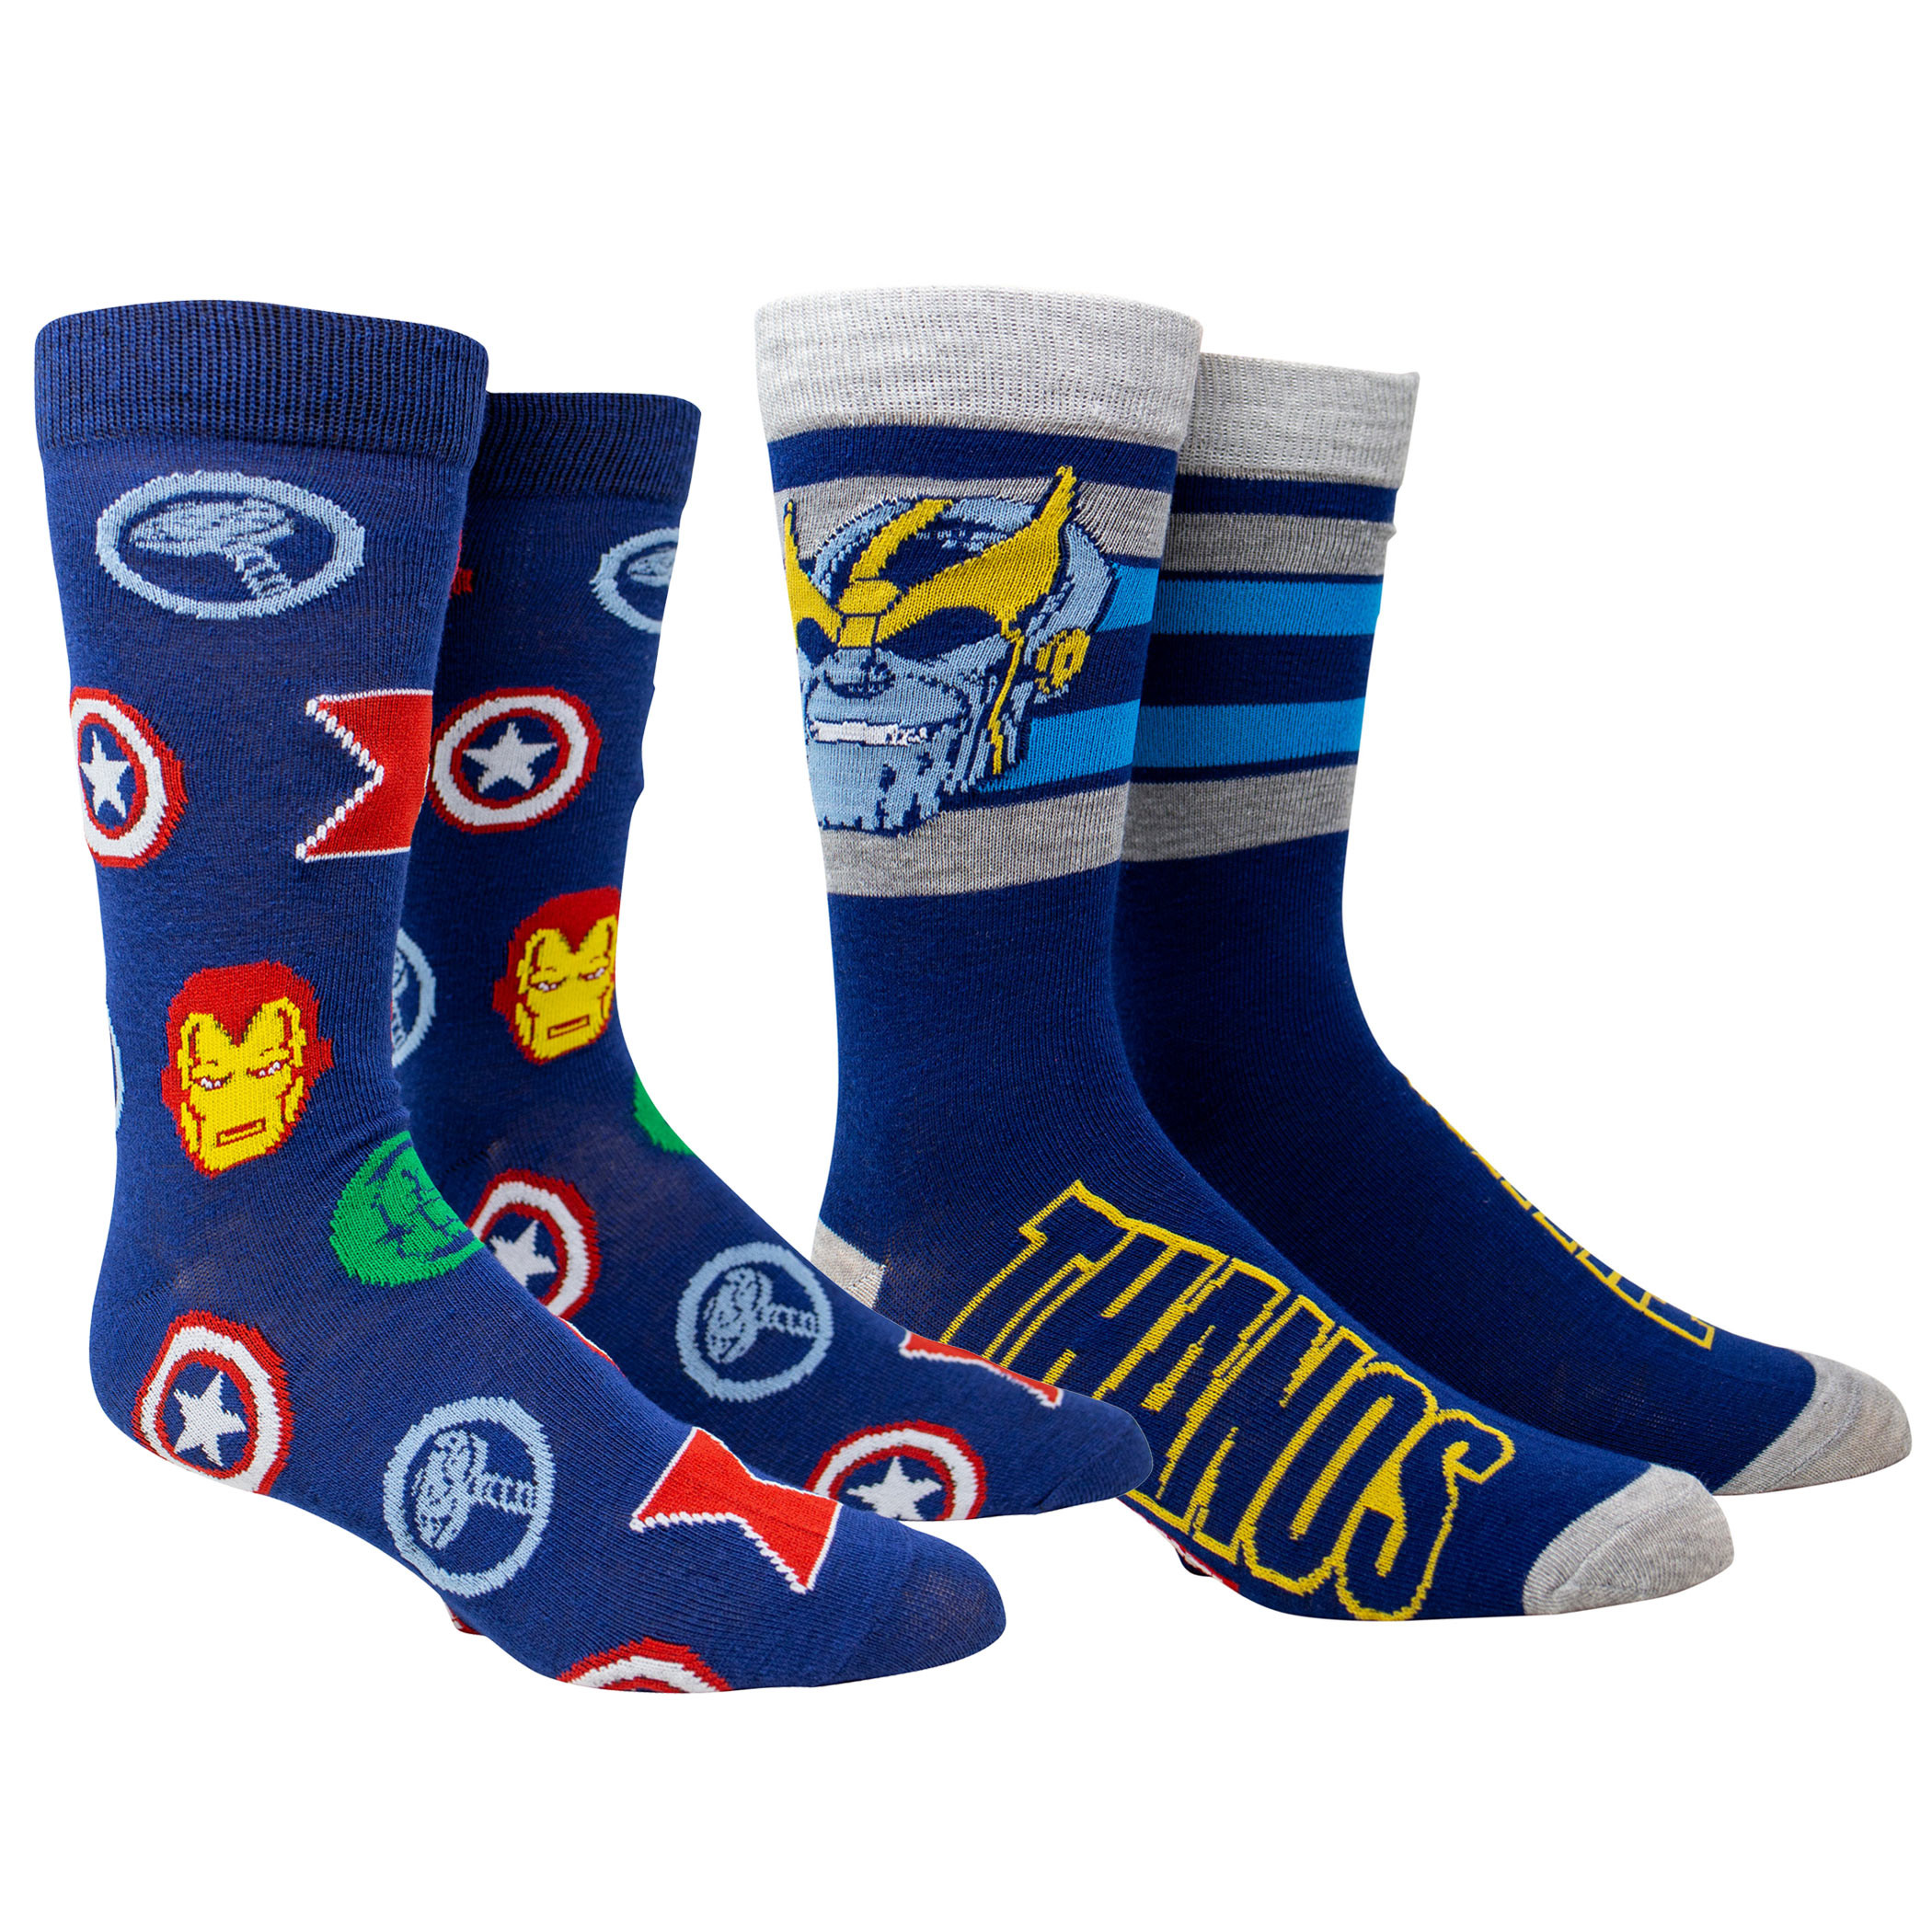 Avengers and Thanos Crew Sock 2-Pack